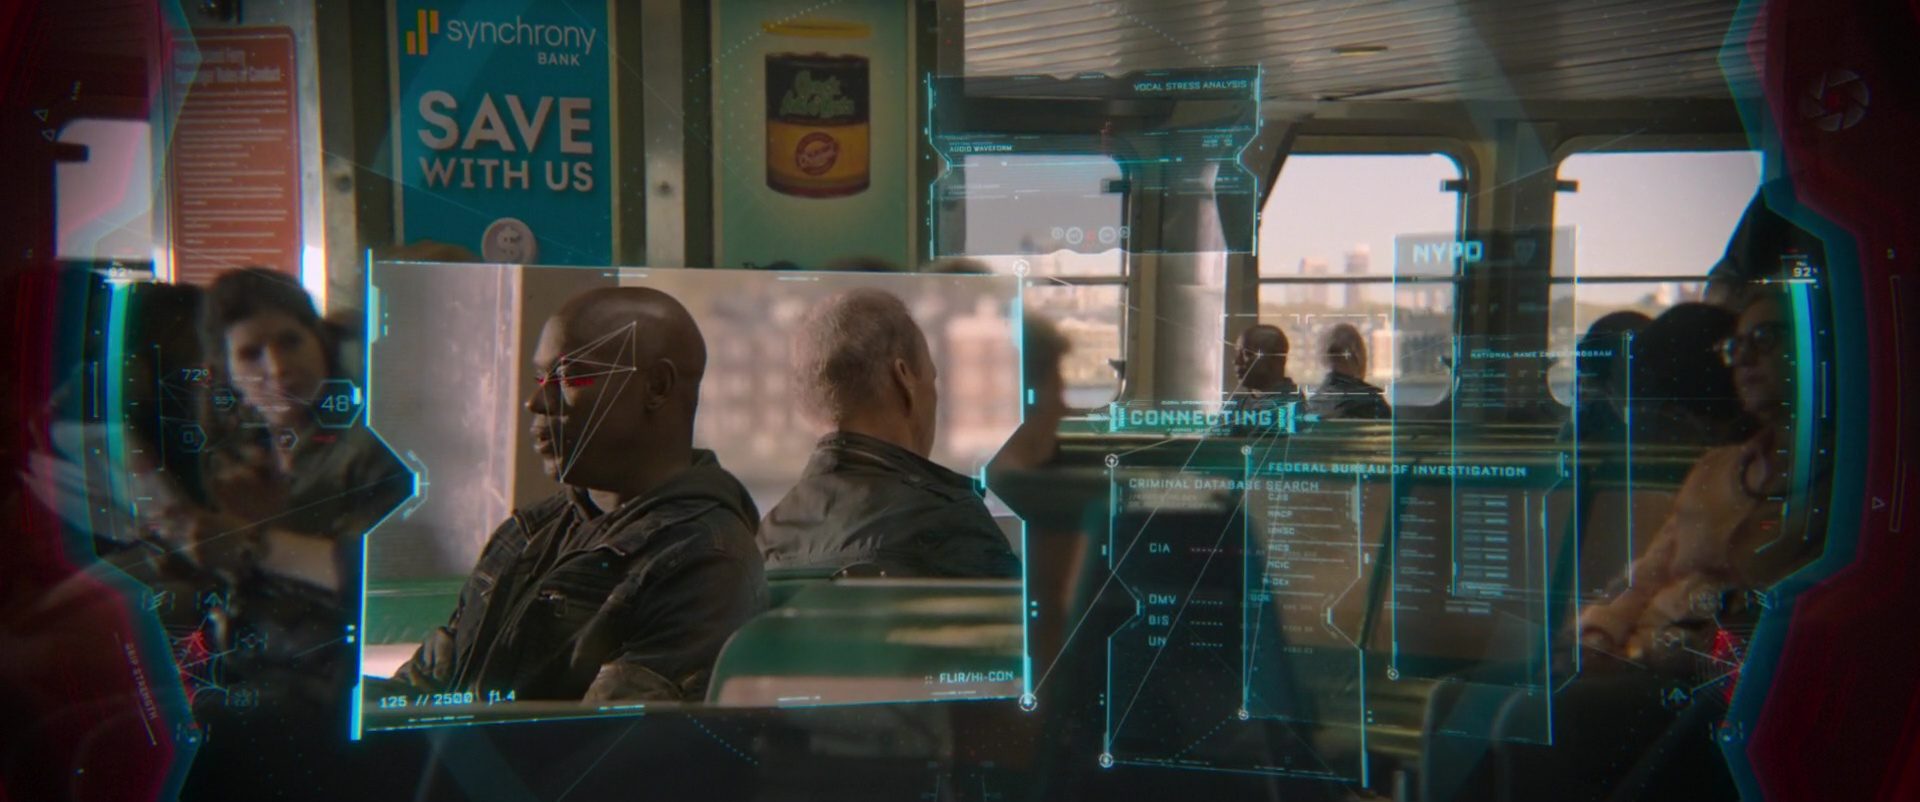 Audi Financial Services >> Synchrony Bank Advertising in Spider-Man: Homecoming (2017) Movie